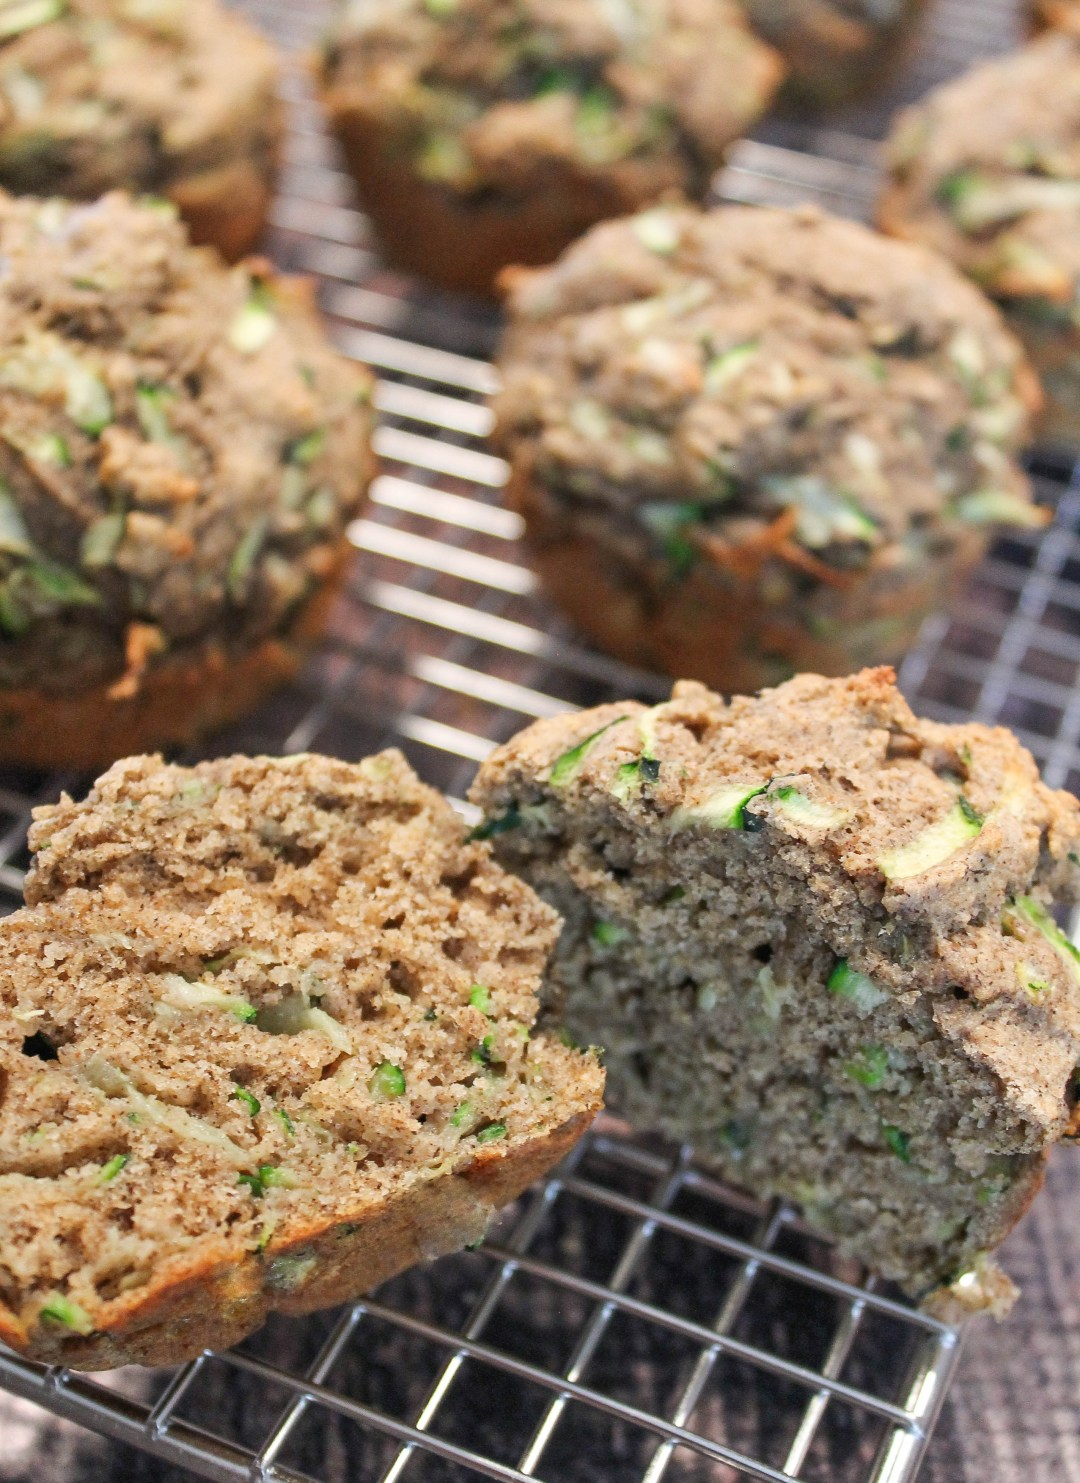 Zucchini Muffins on wire cooling rack